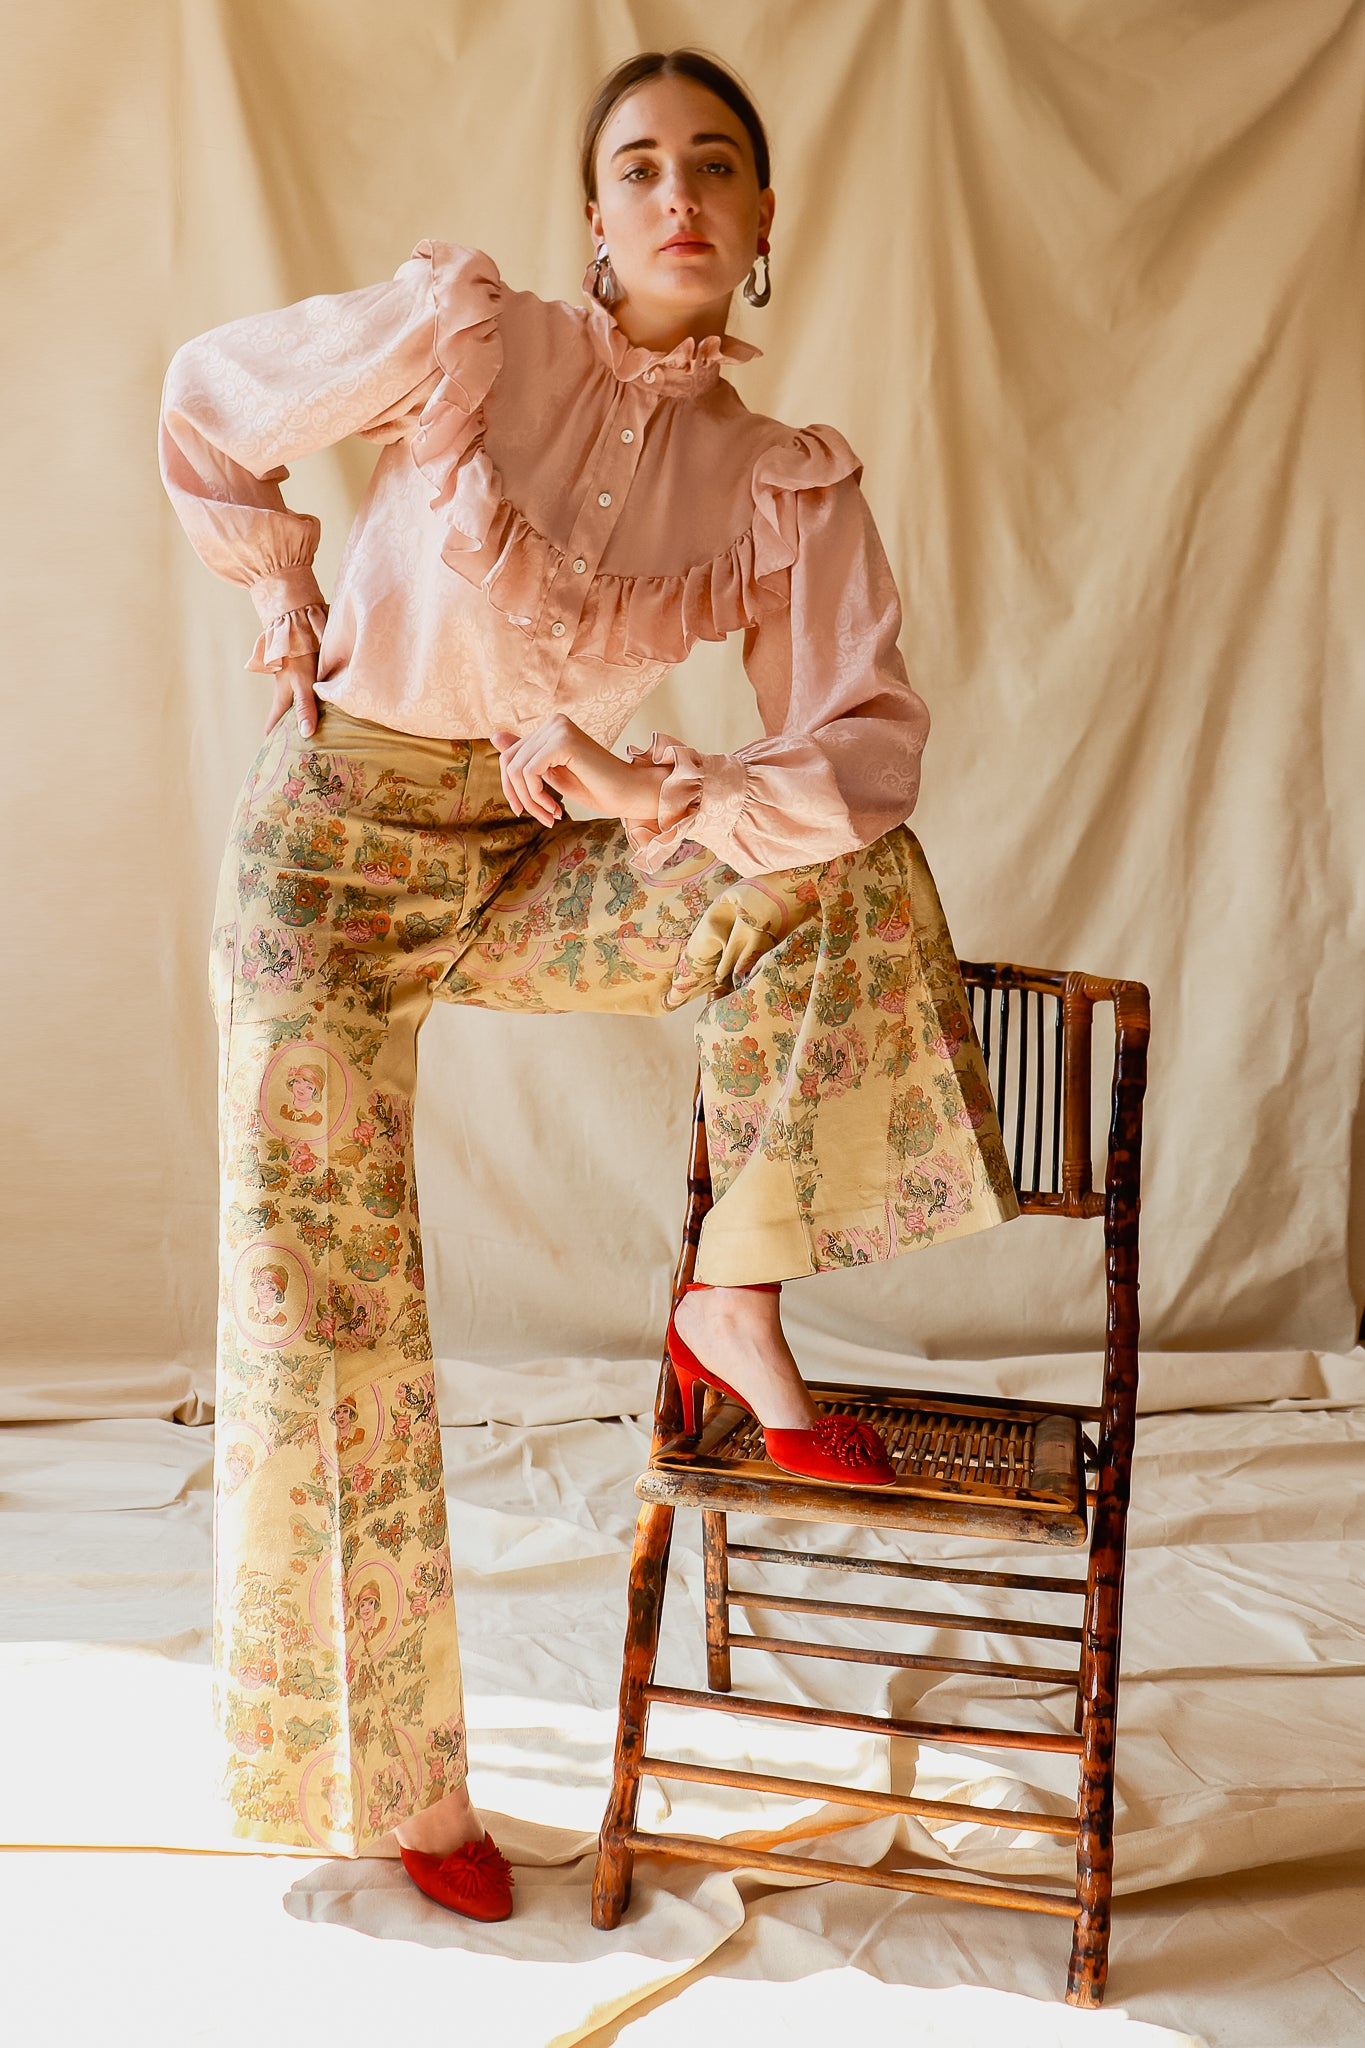 Recess Vintage Consignment LA Girl stepping on chair in YSL Blouse & Painted Suede Pants